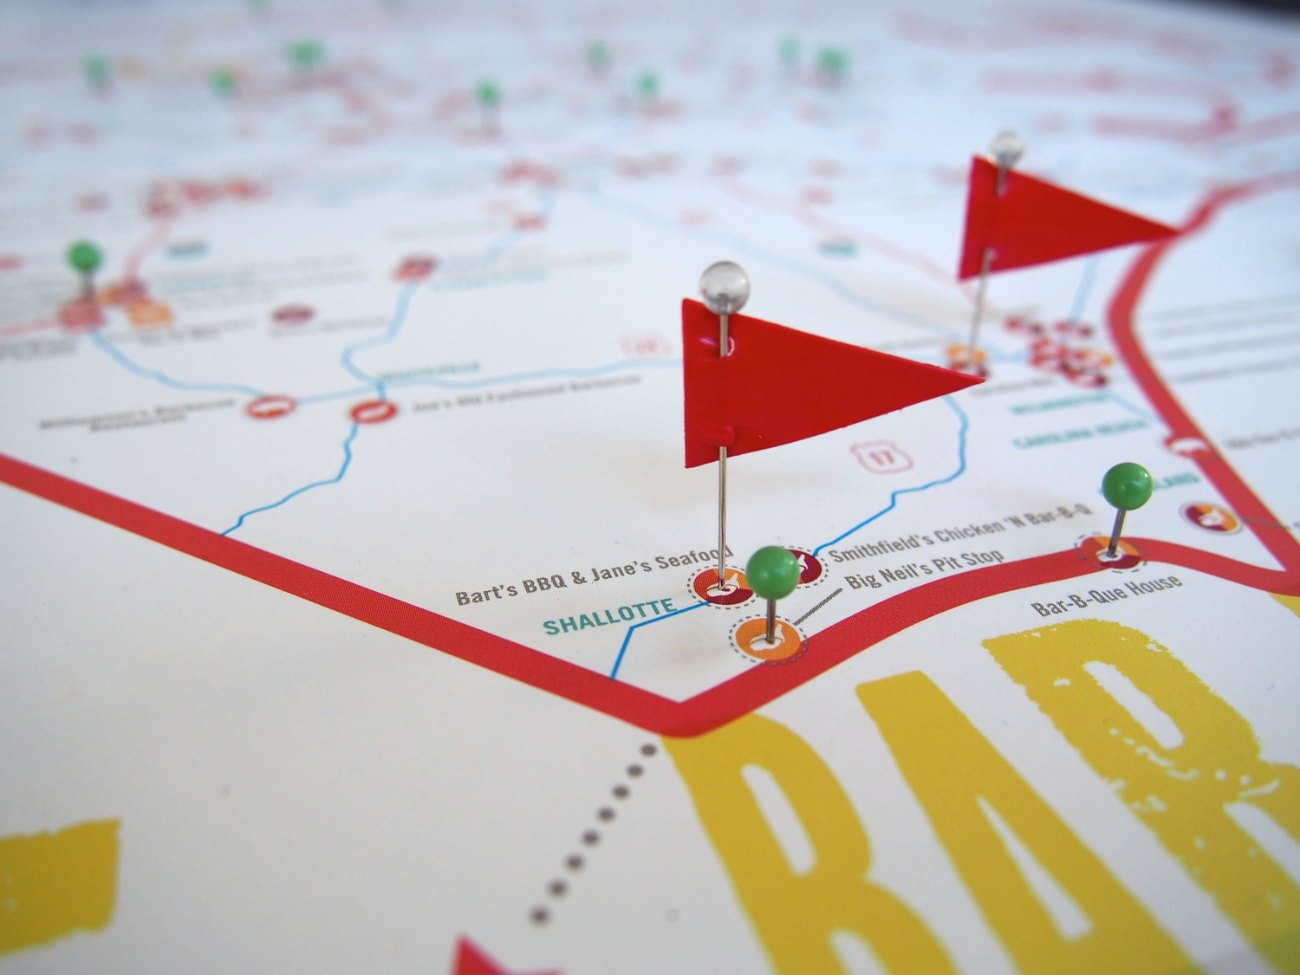 EDIA turns every day into an adventure with printed maps in a digital world